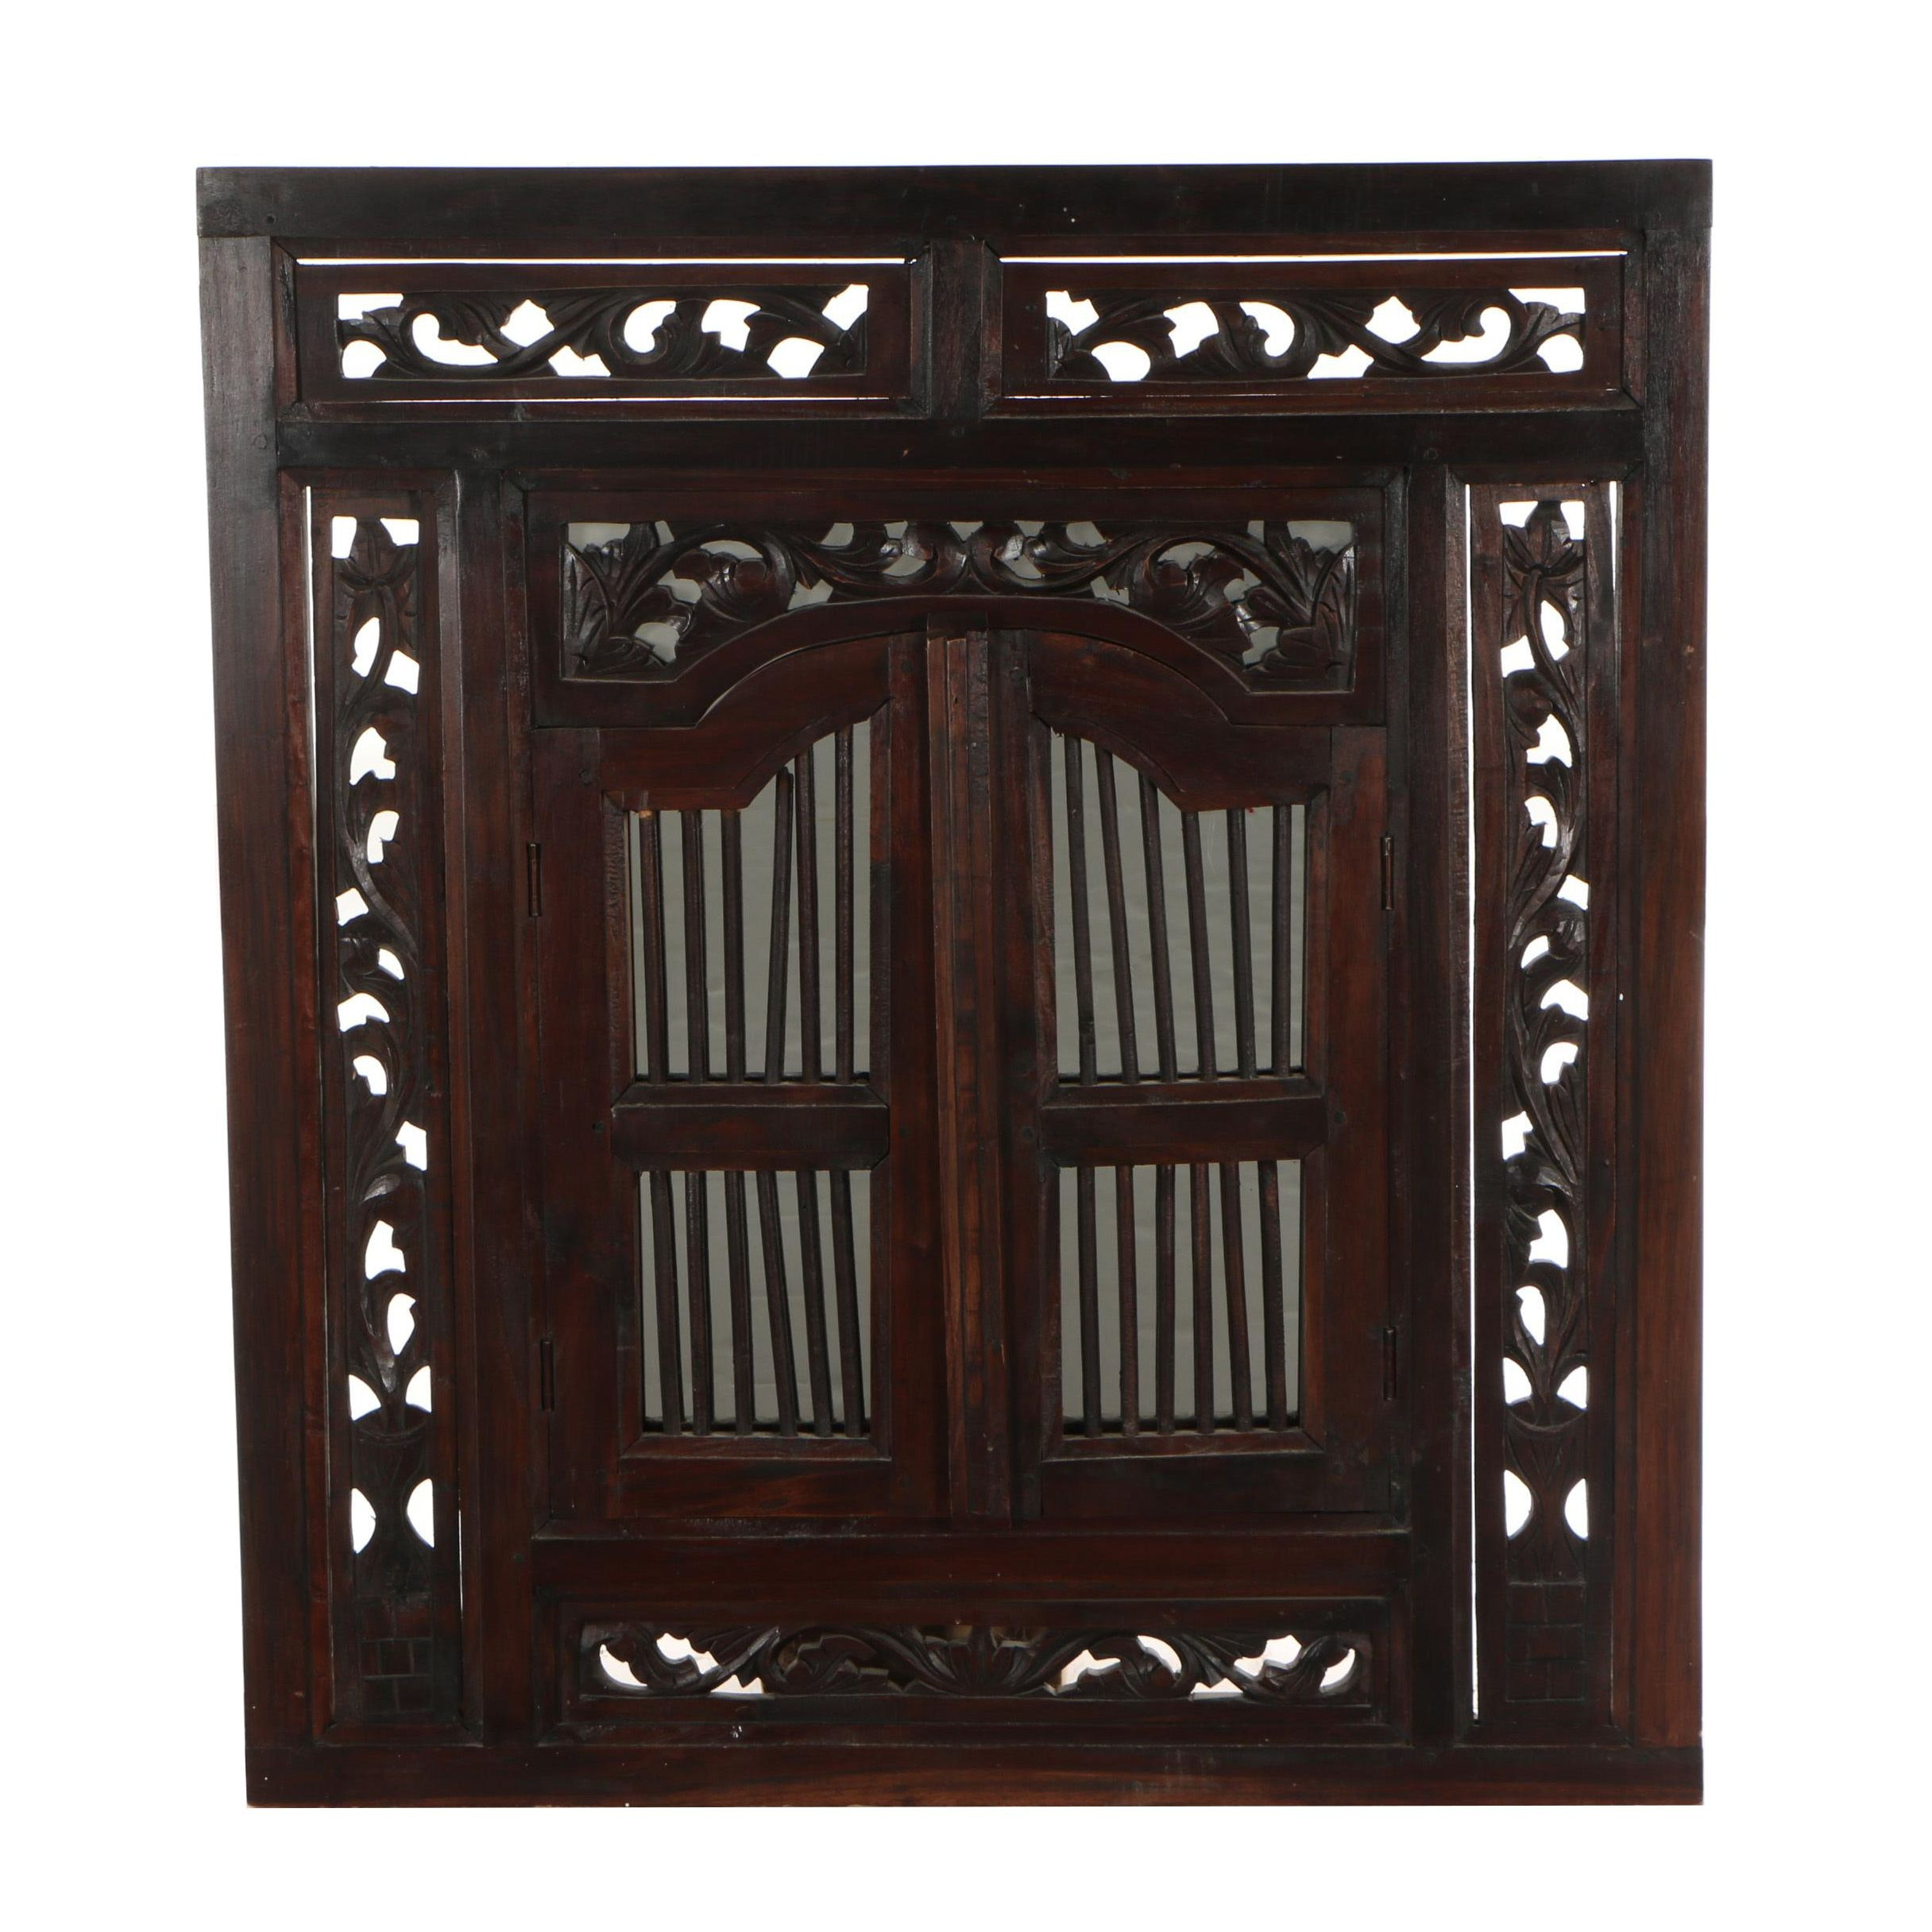 Balinese Style Carved Wood Window Mirror with Hinged Doors